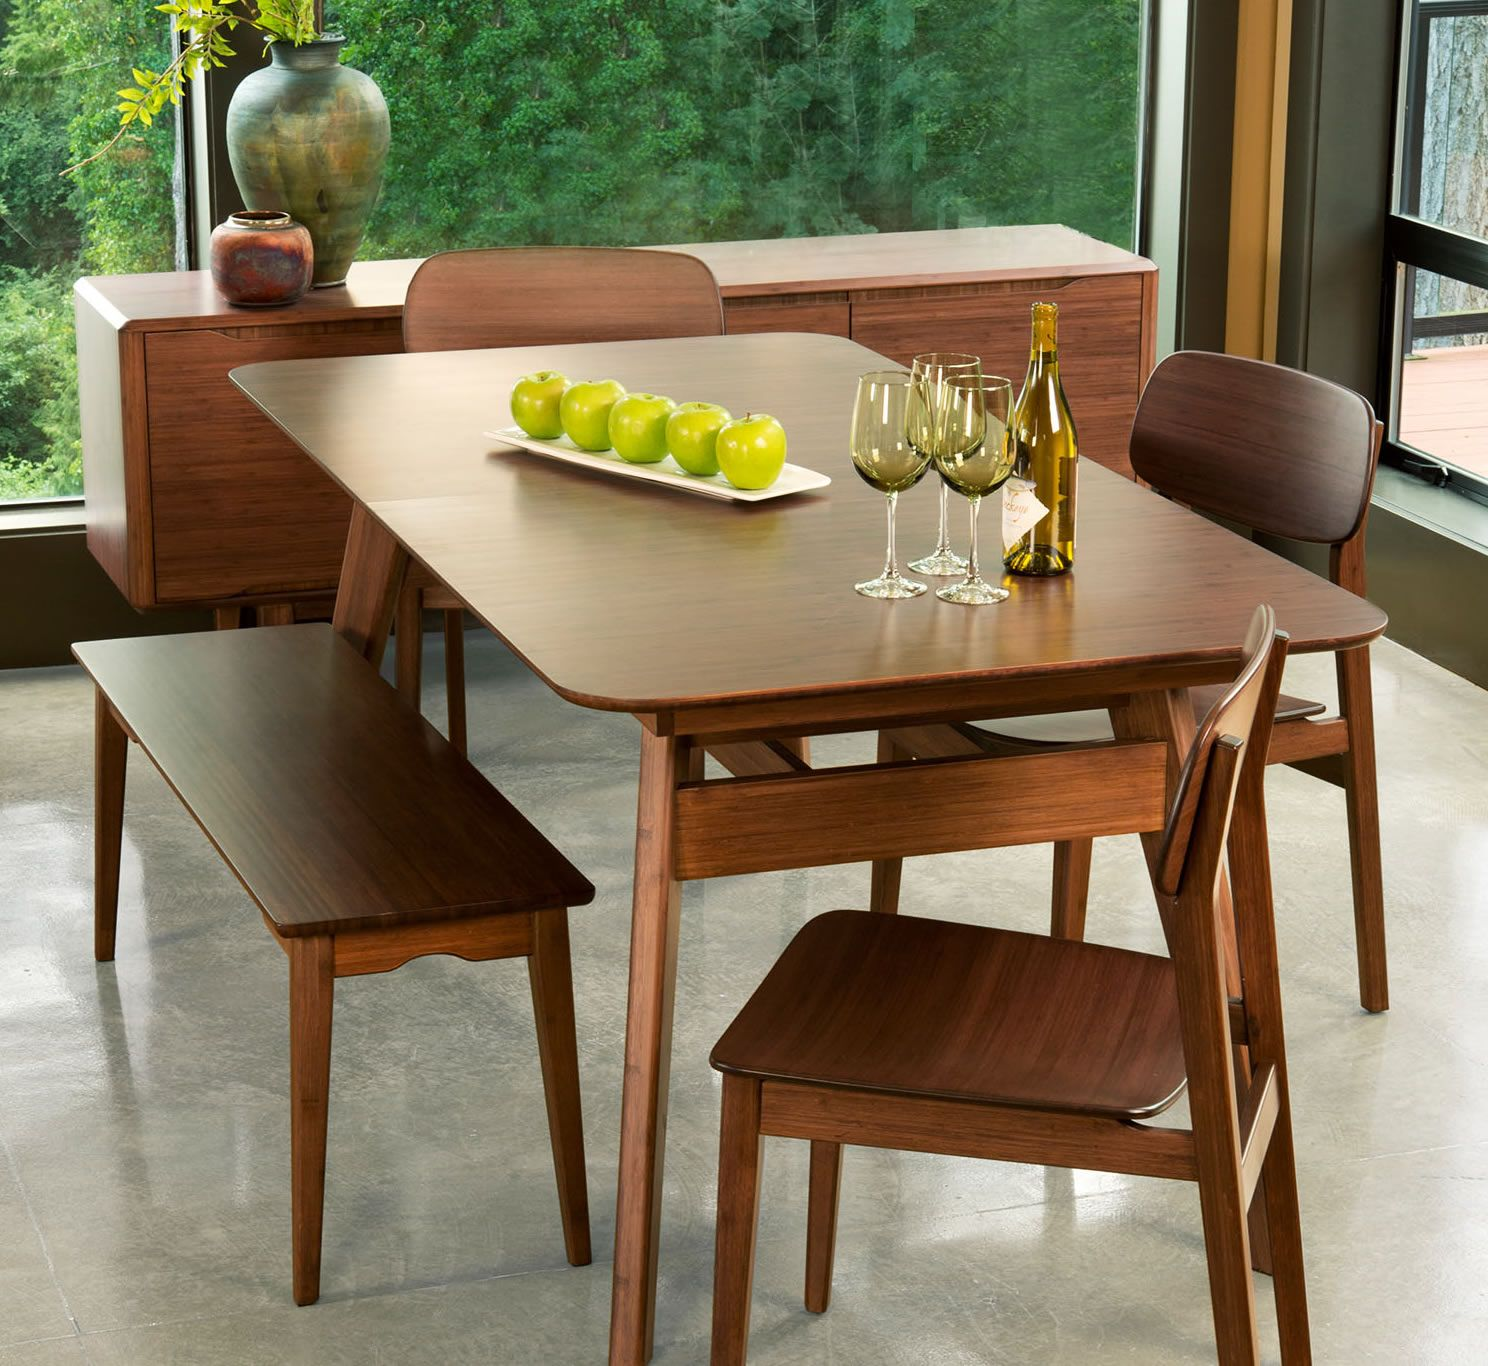 Read More About Modern Bamboo Furniture And Sustainable Furniture